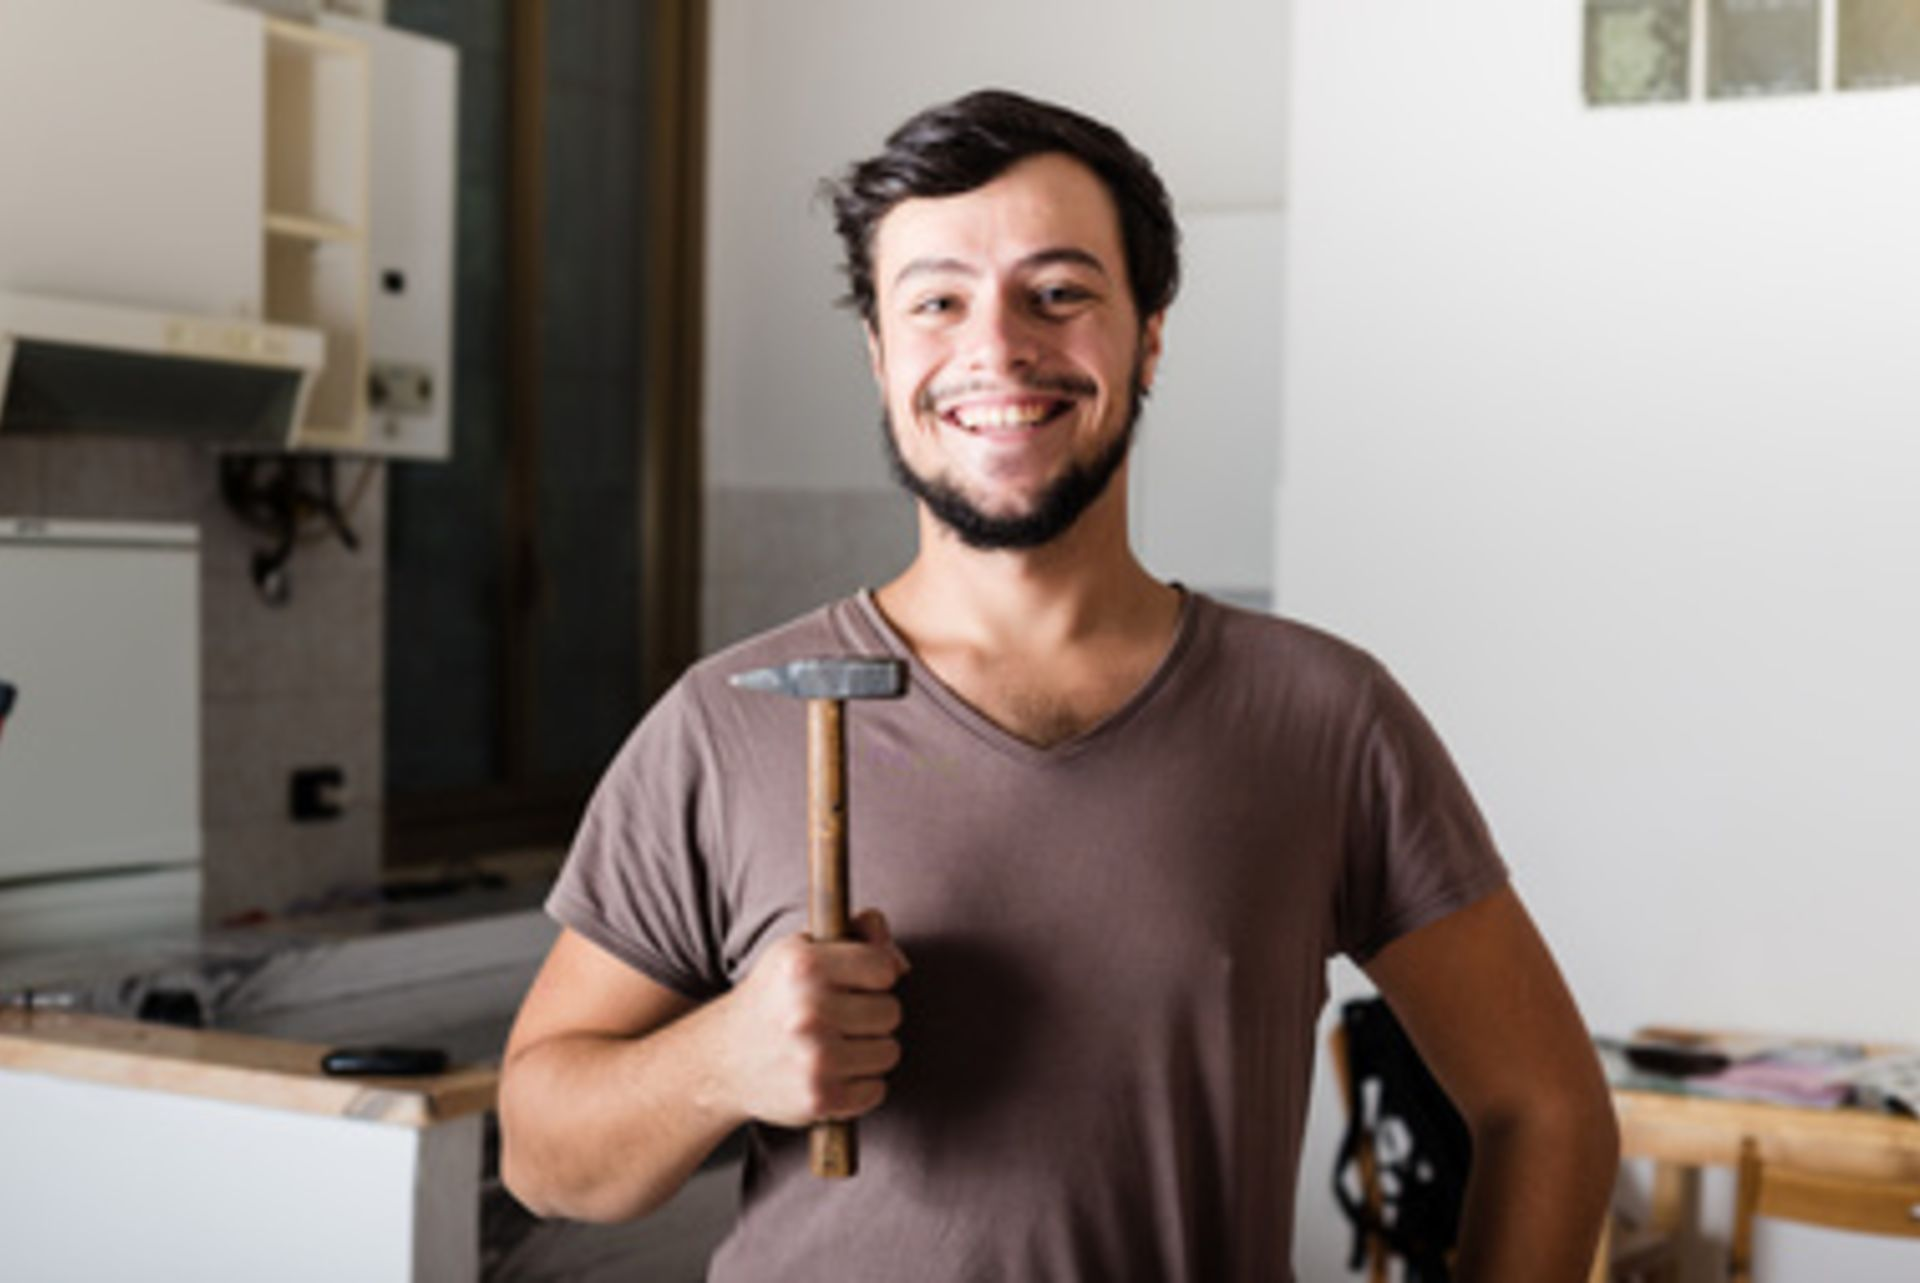 The 5 Home Improvements That Give the Best ROI